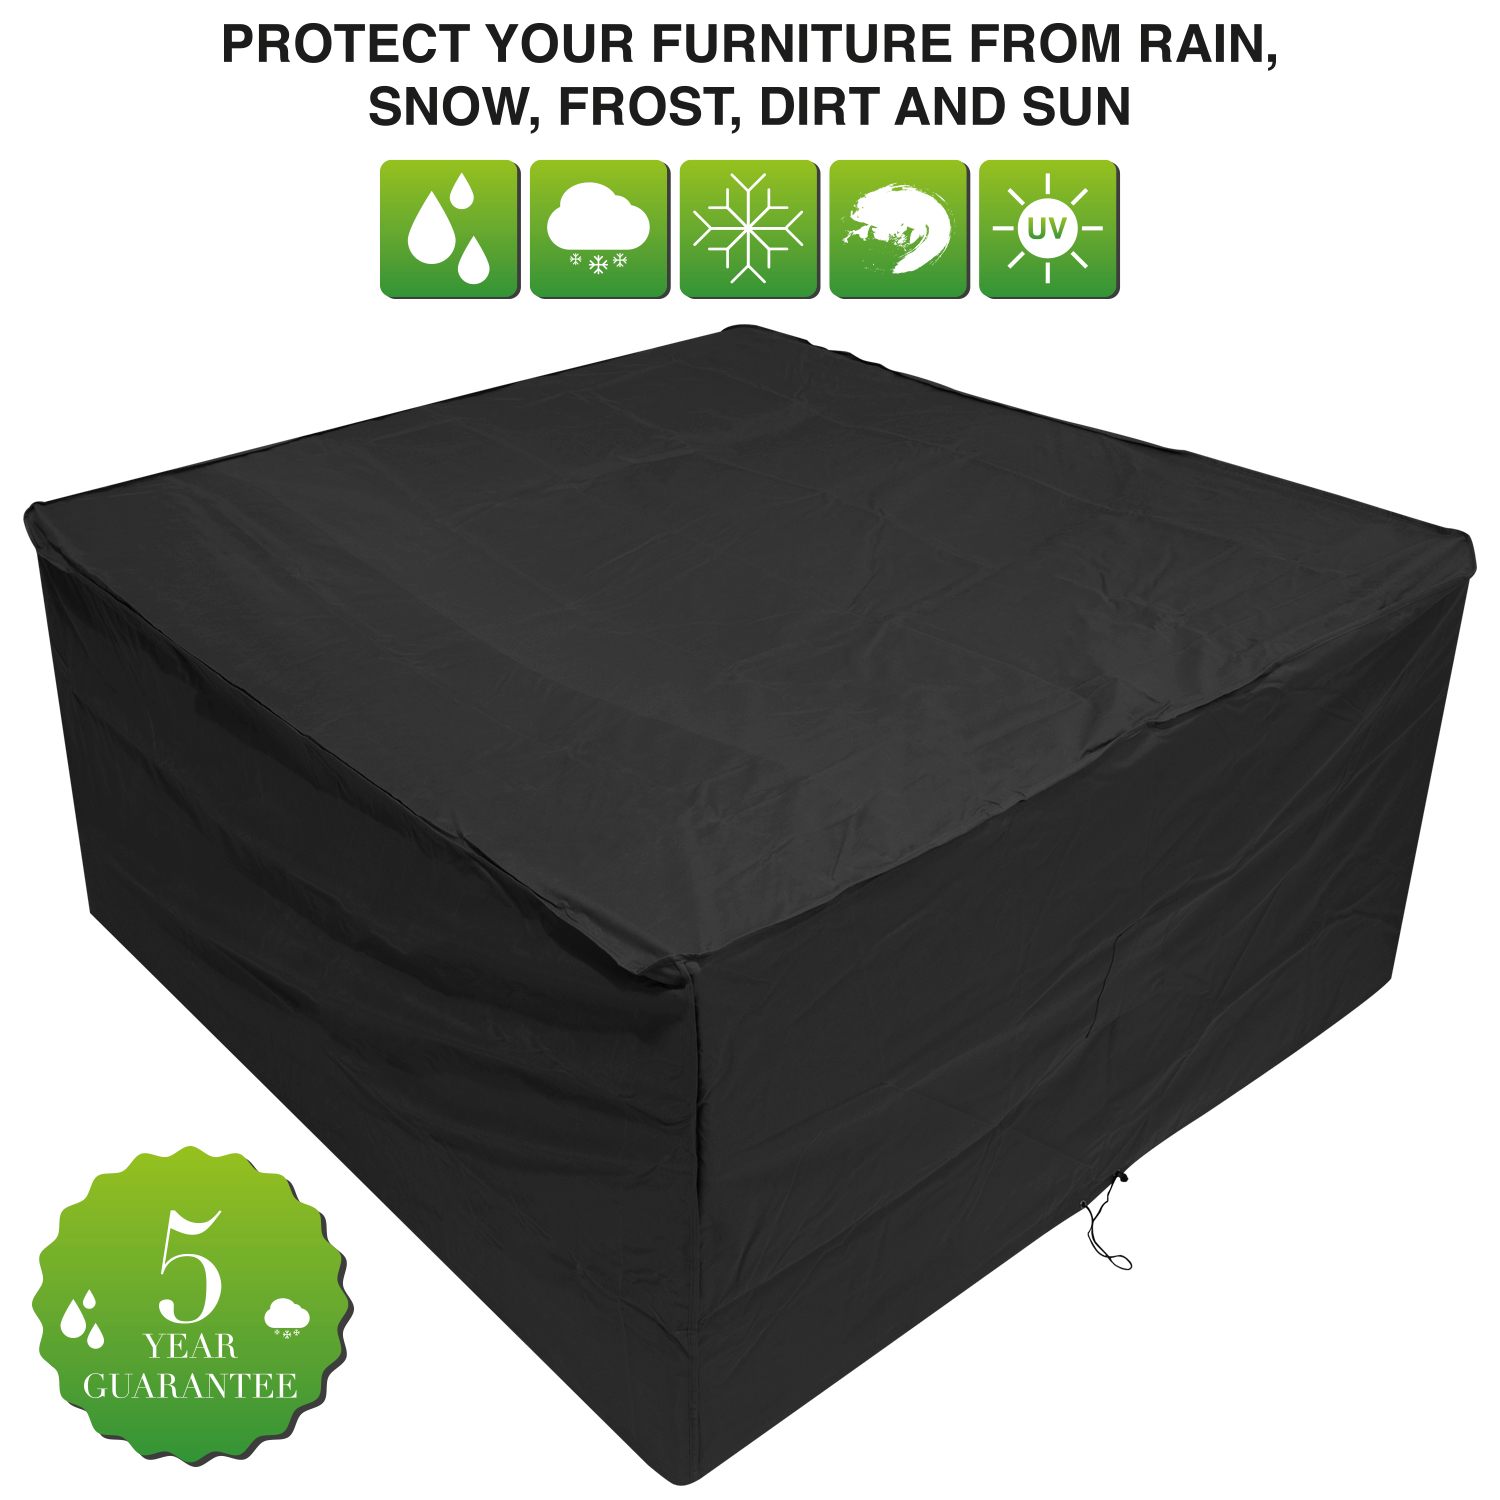 Oxbridge medium oval patio set cover covers outdoor value for Oxbridge outdoor furniture covers